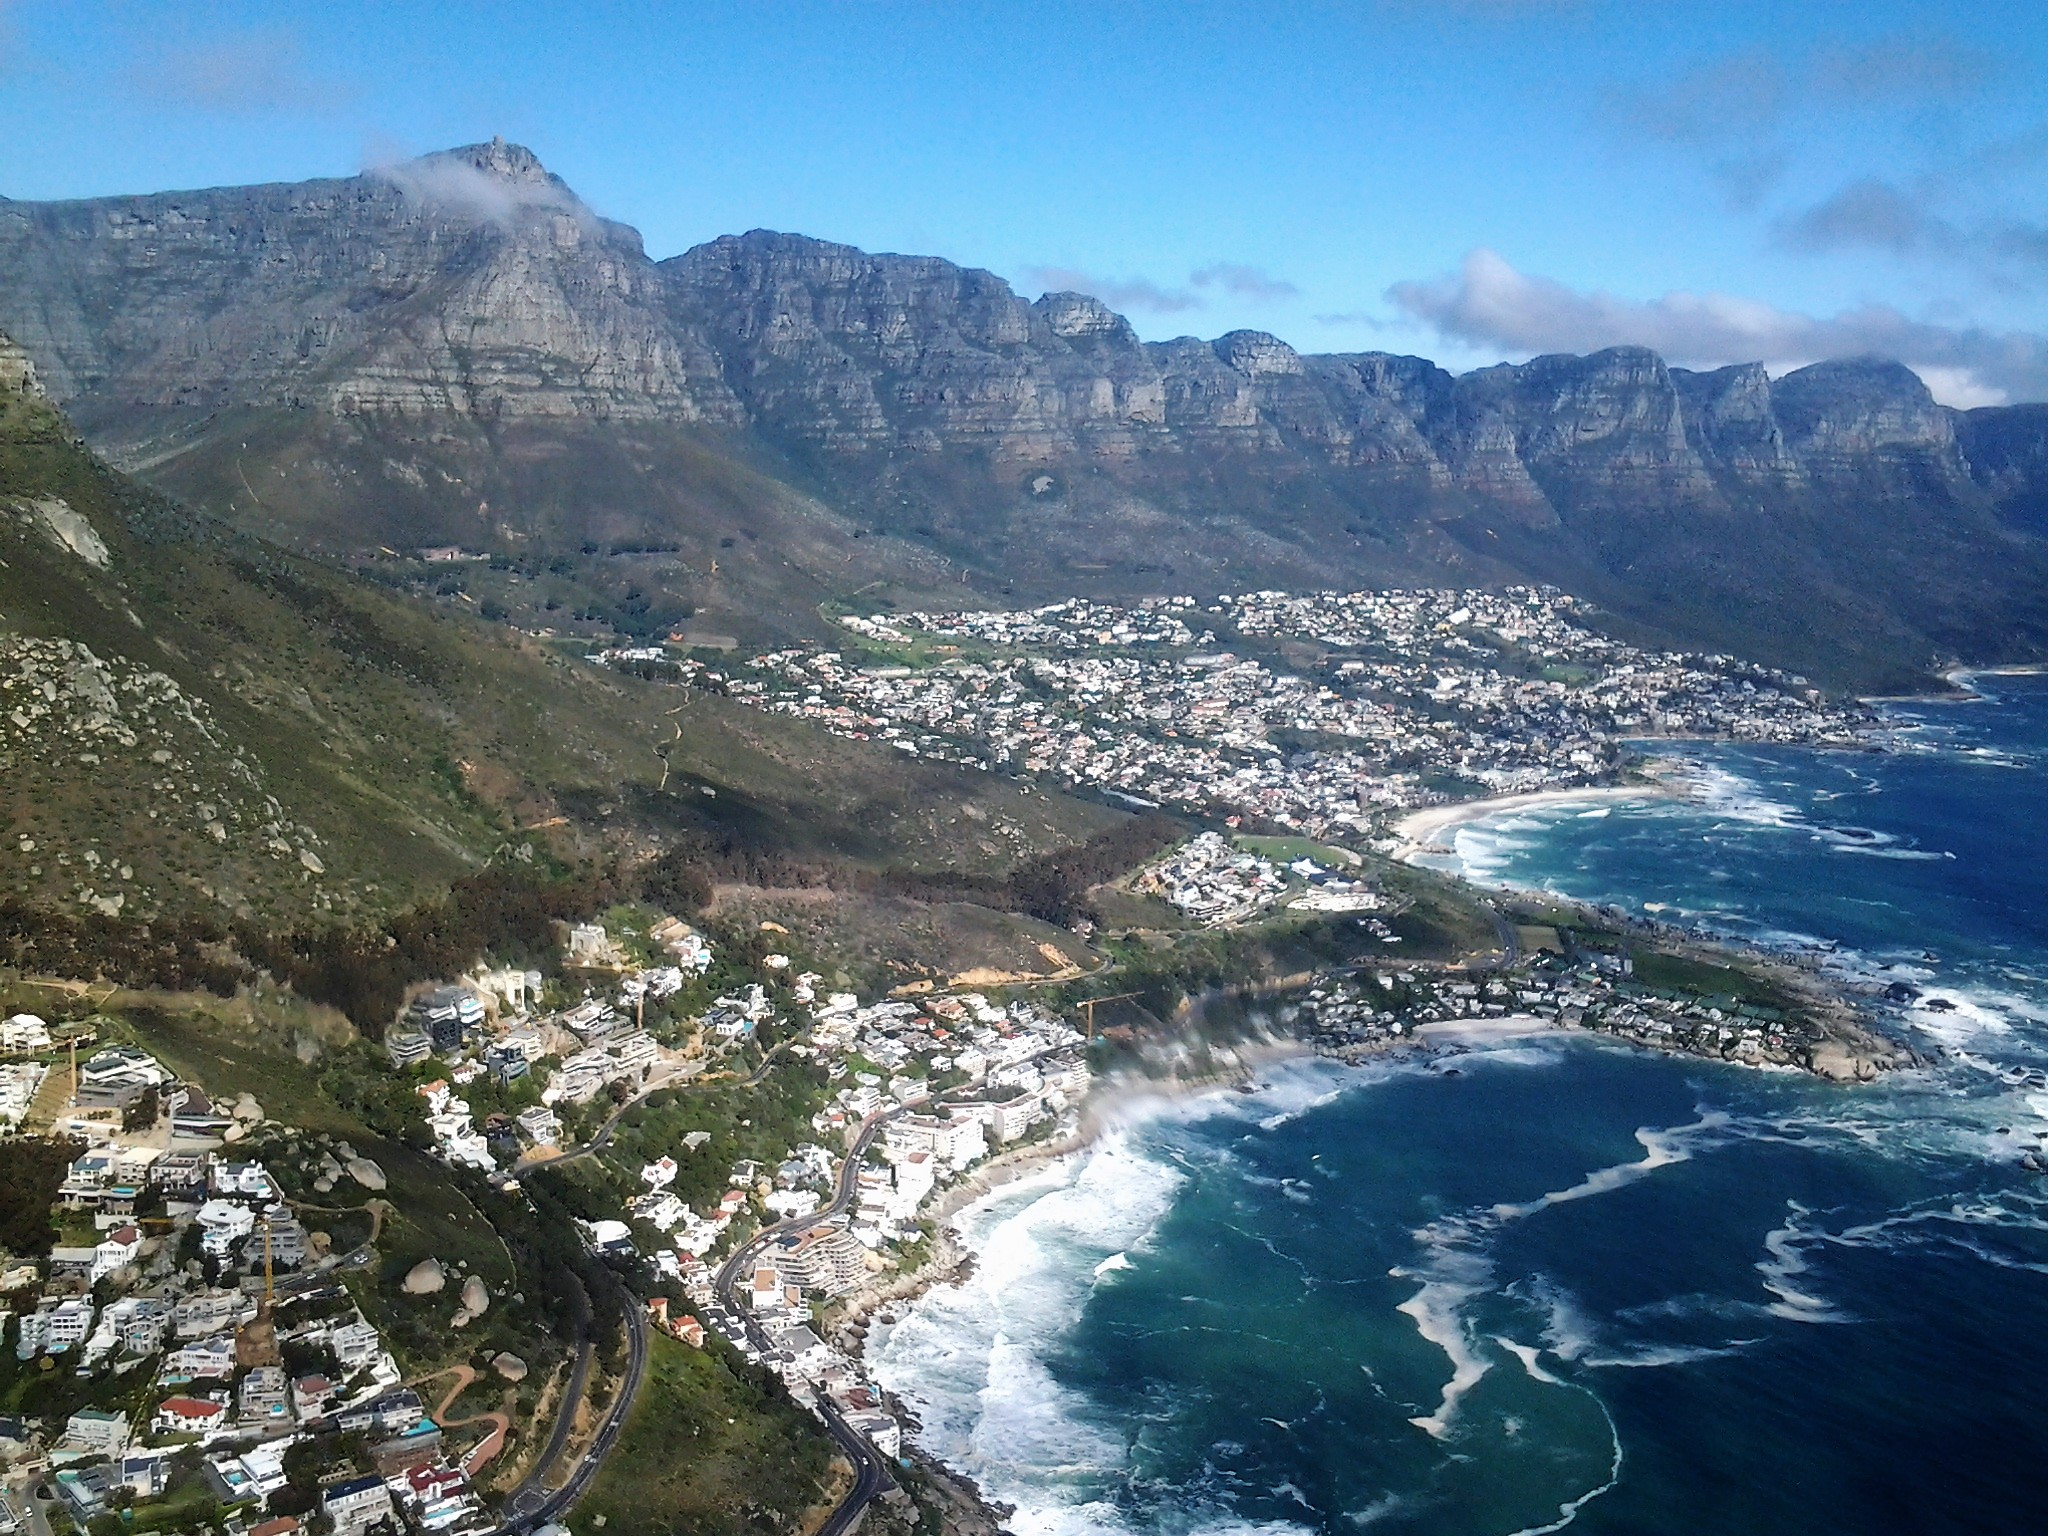 Campsbay, South Africa